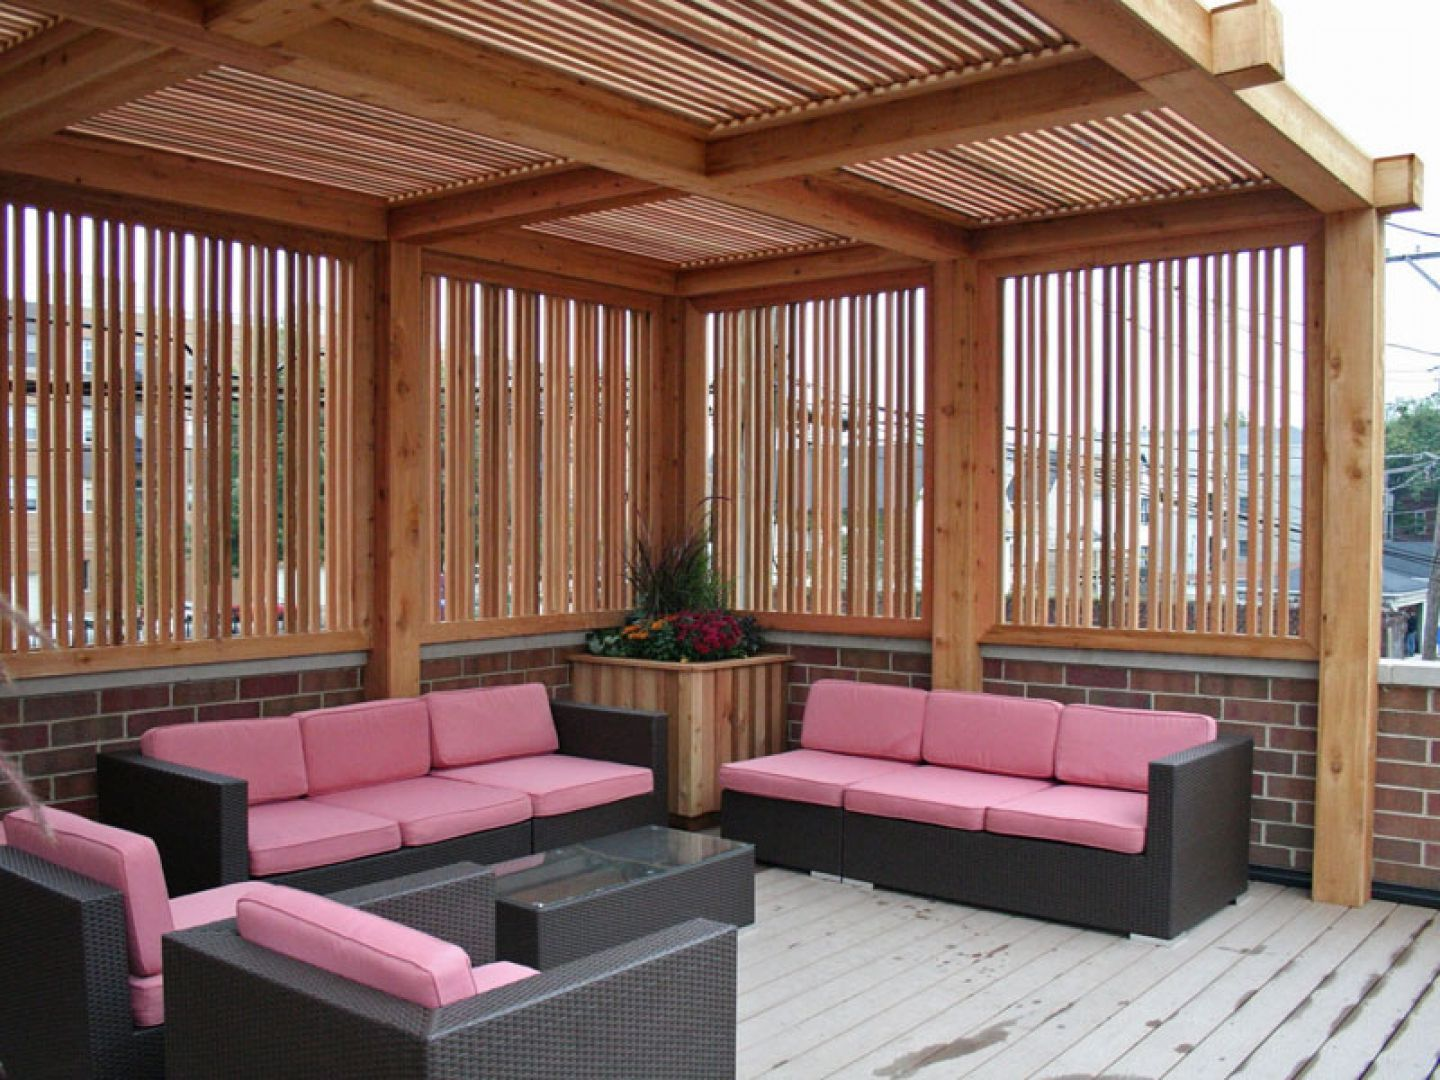 outdoor living room design with wooden pergola and pink sofa idea outdoor living room design with wooden pergola and pink sofa idea pretty outdoor living room